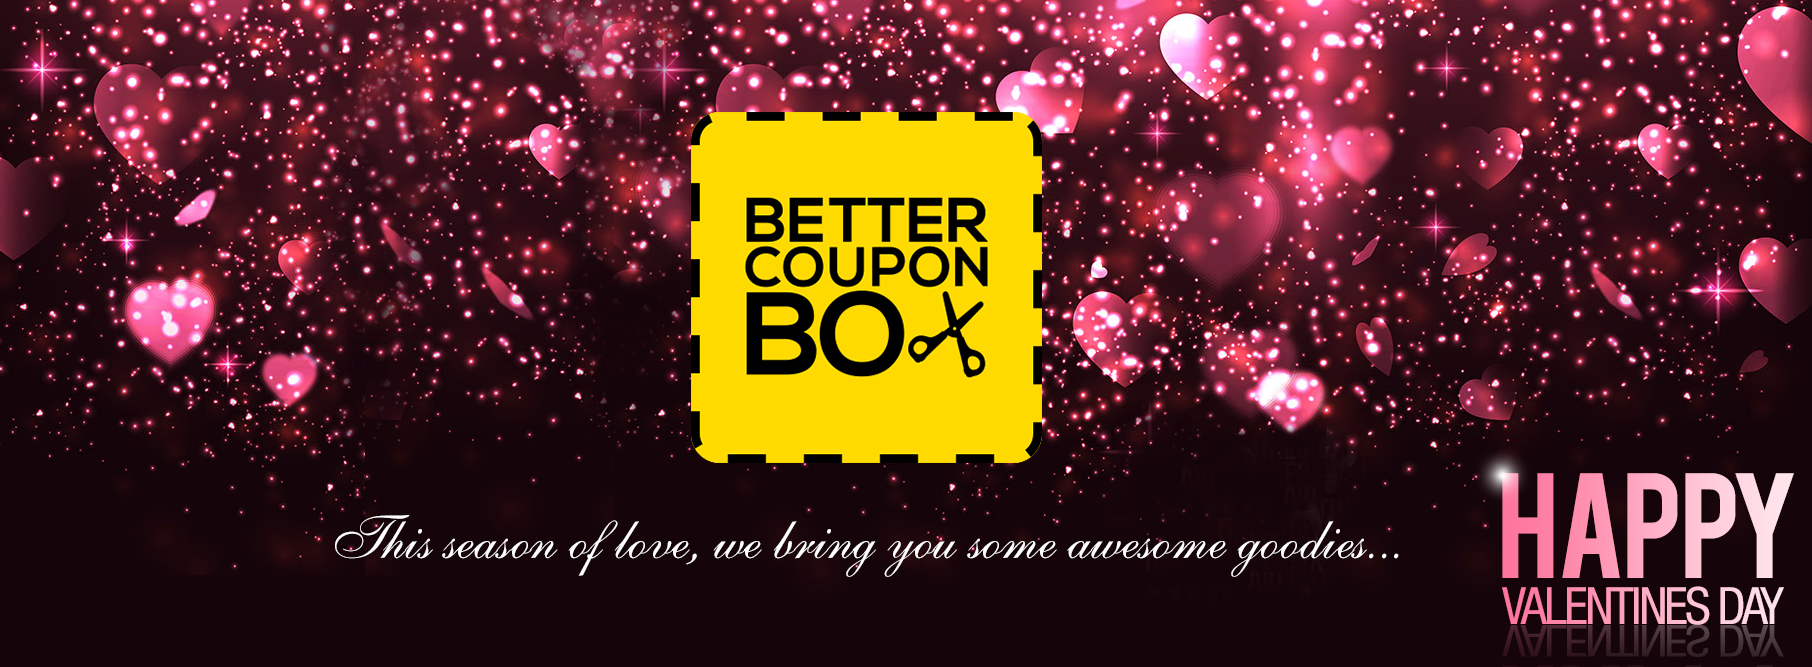 Premium Better Coupon Box